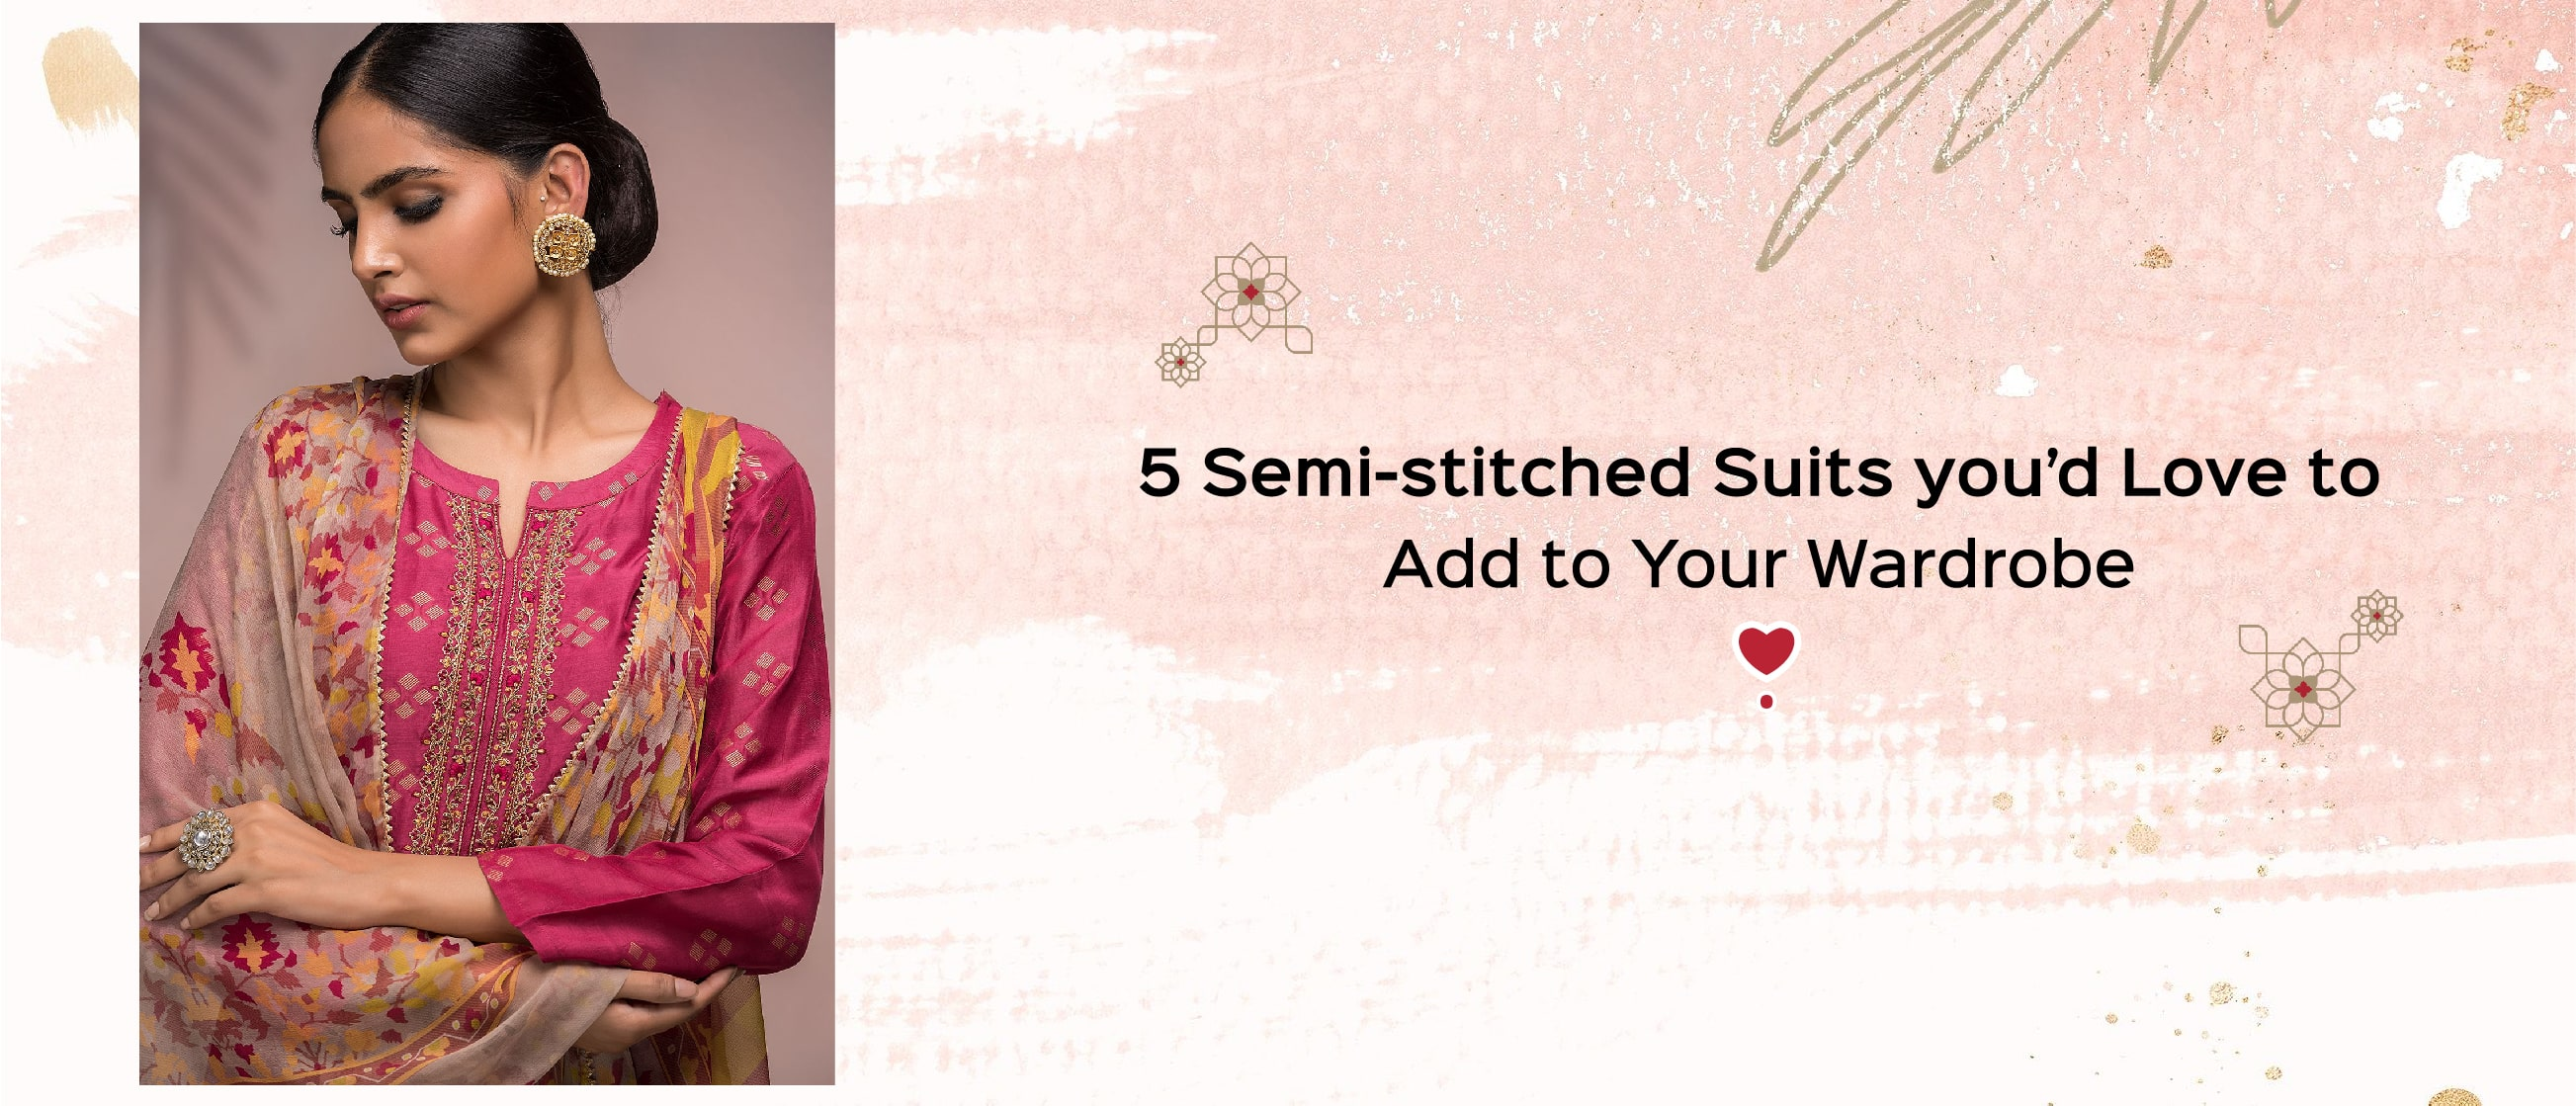 5 Semi-stitched Suits you'd Love to Add to Your Wardrobe